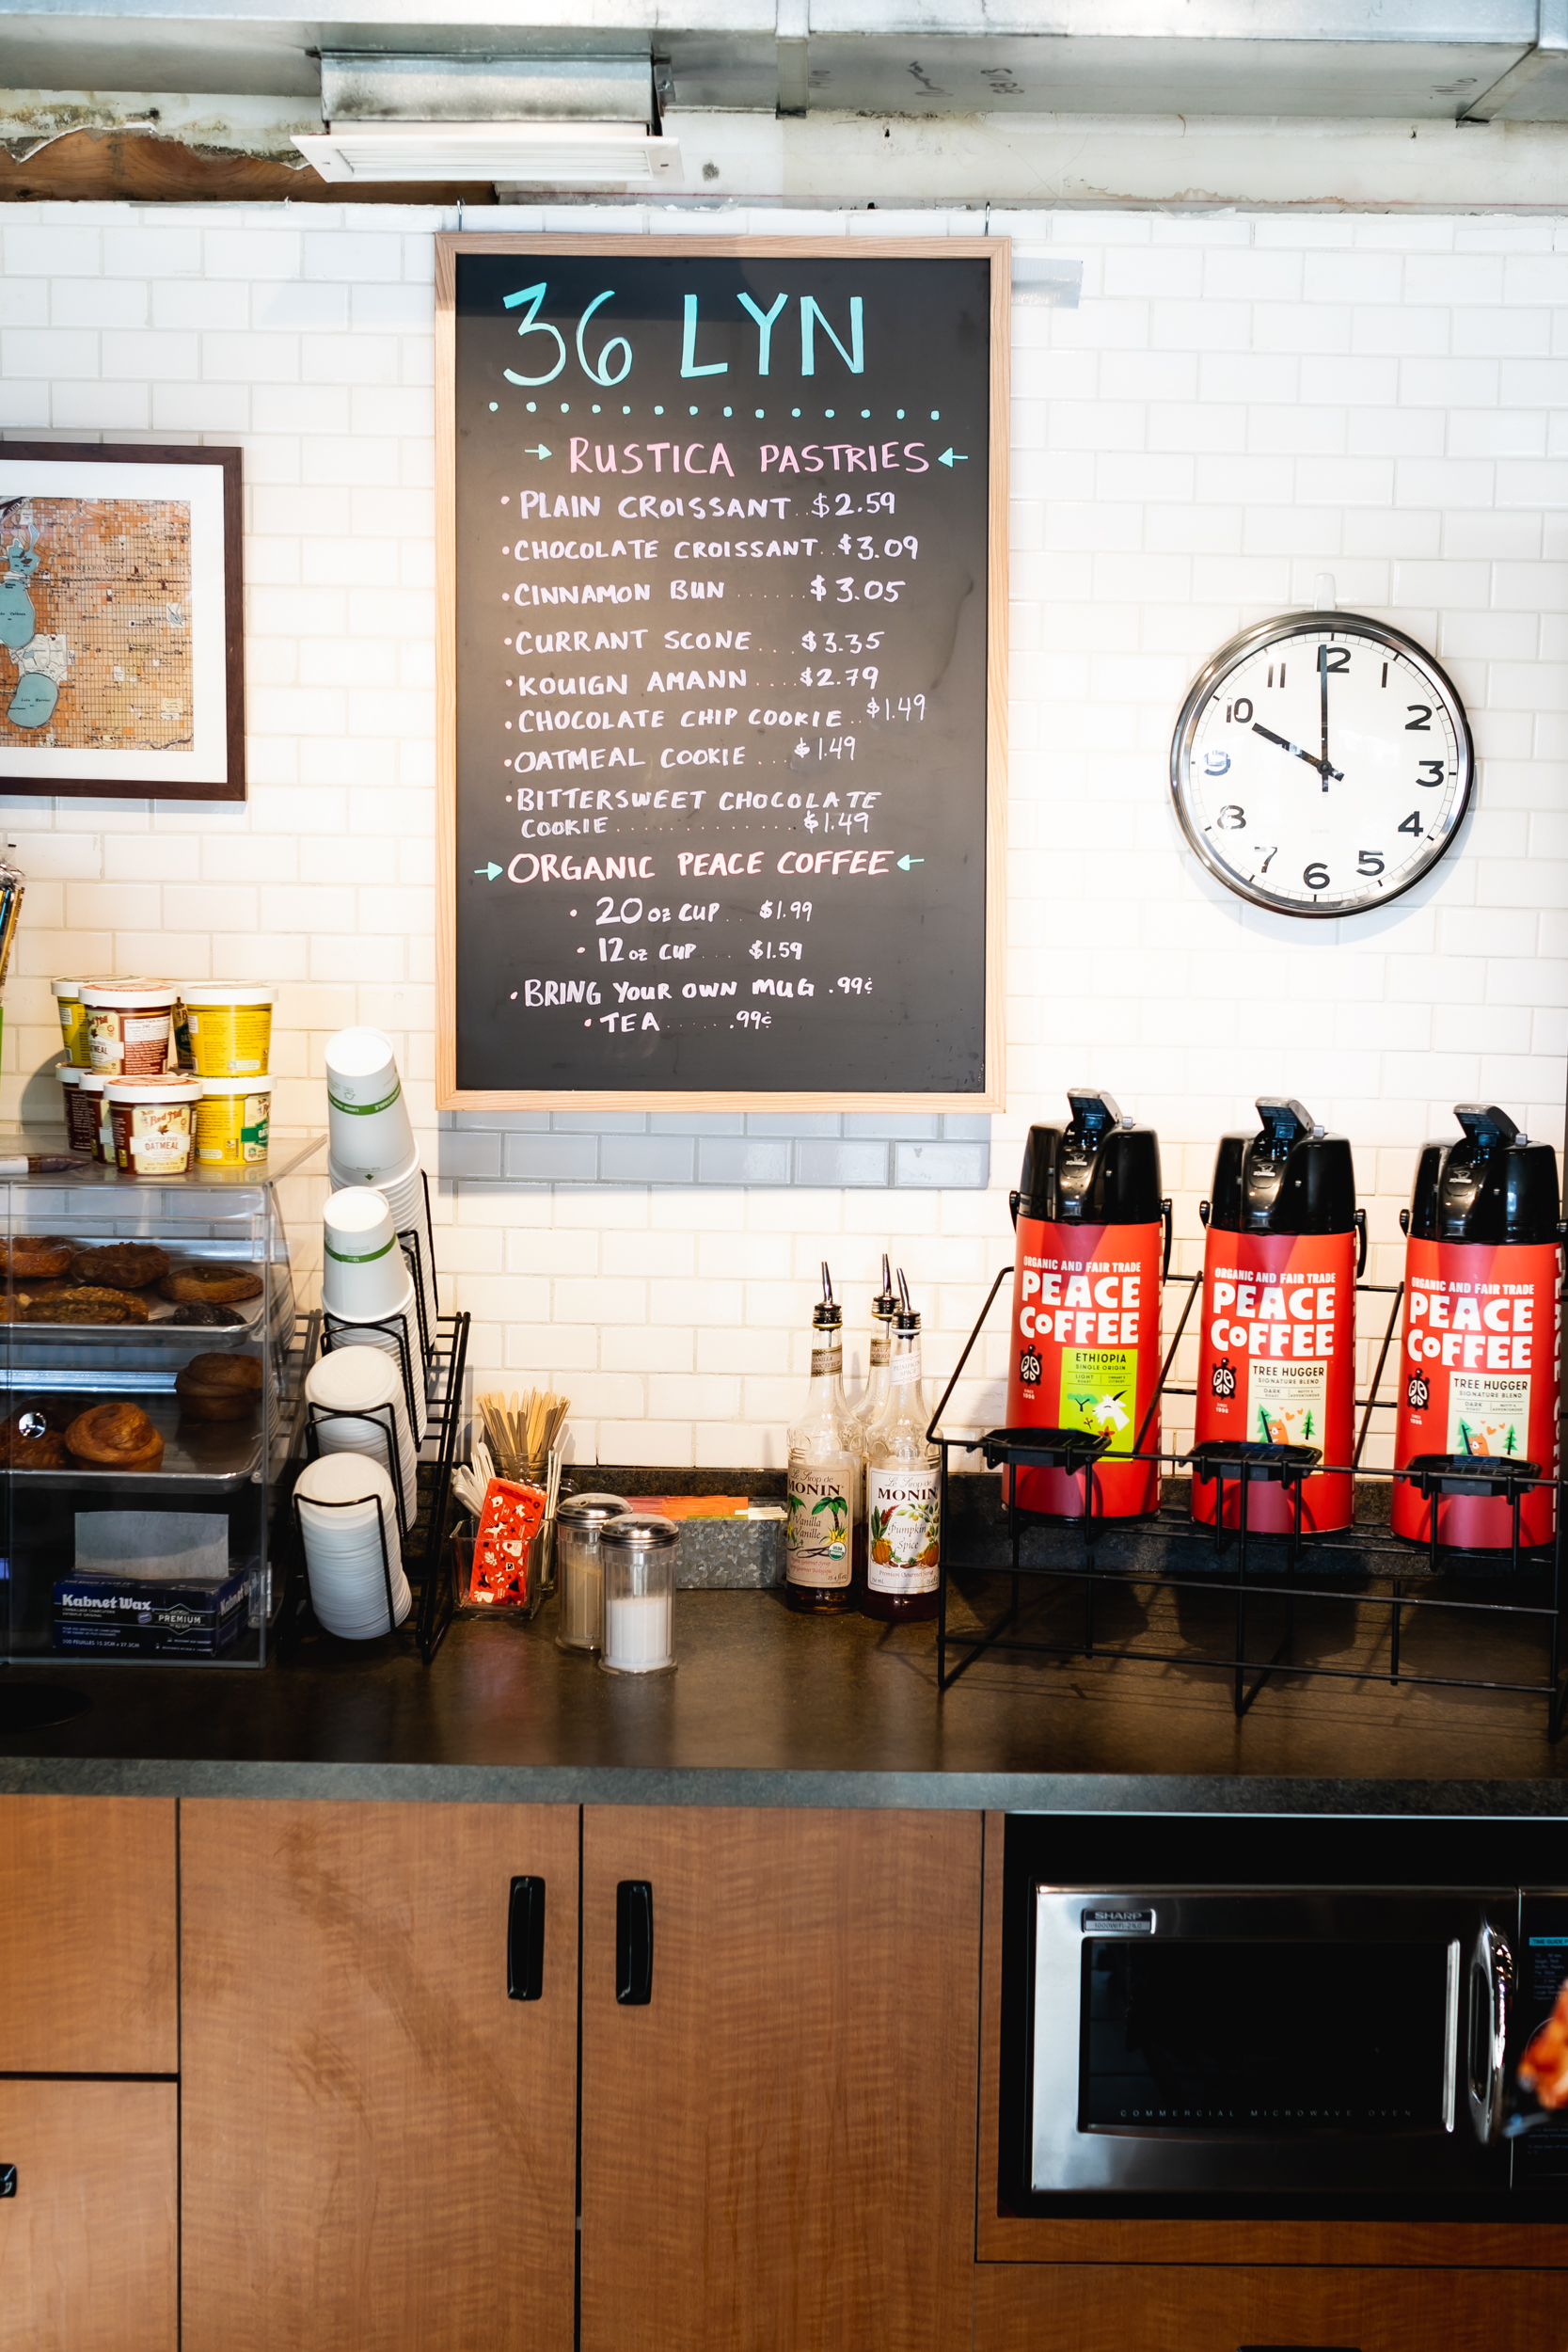 Peace Coffee and Rustica Bakery are two vendors with their products for sale at 36 Lyn Refuel Station // Photo by Garrett Born